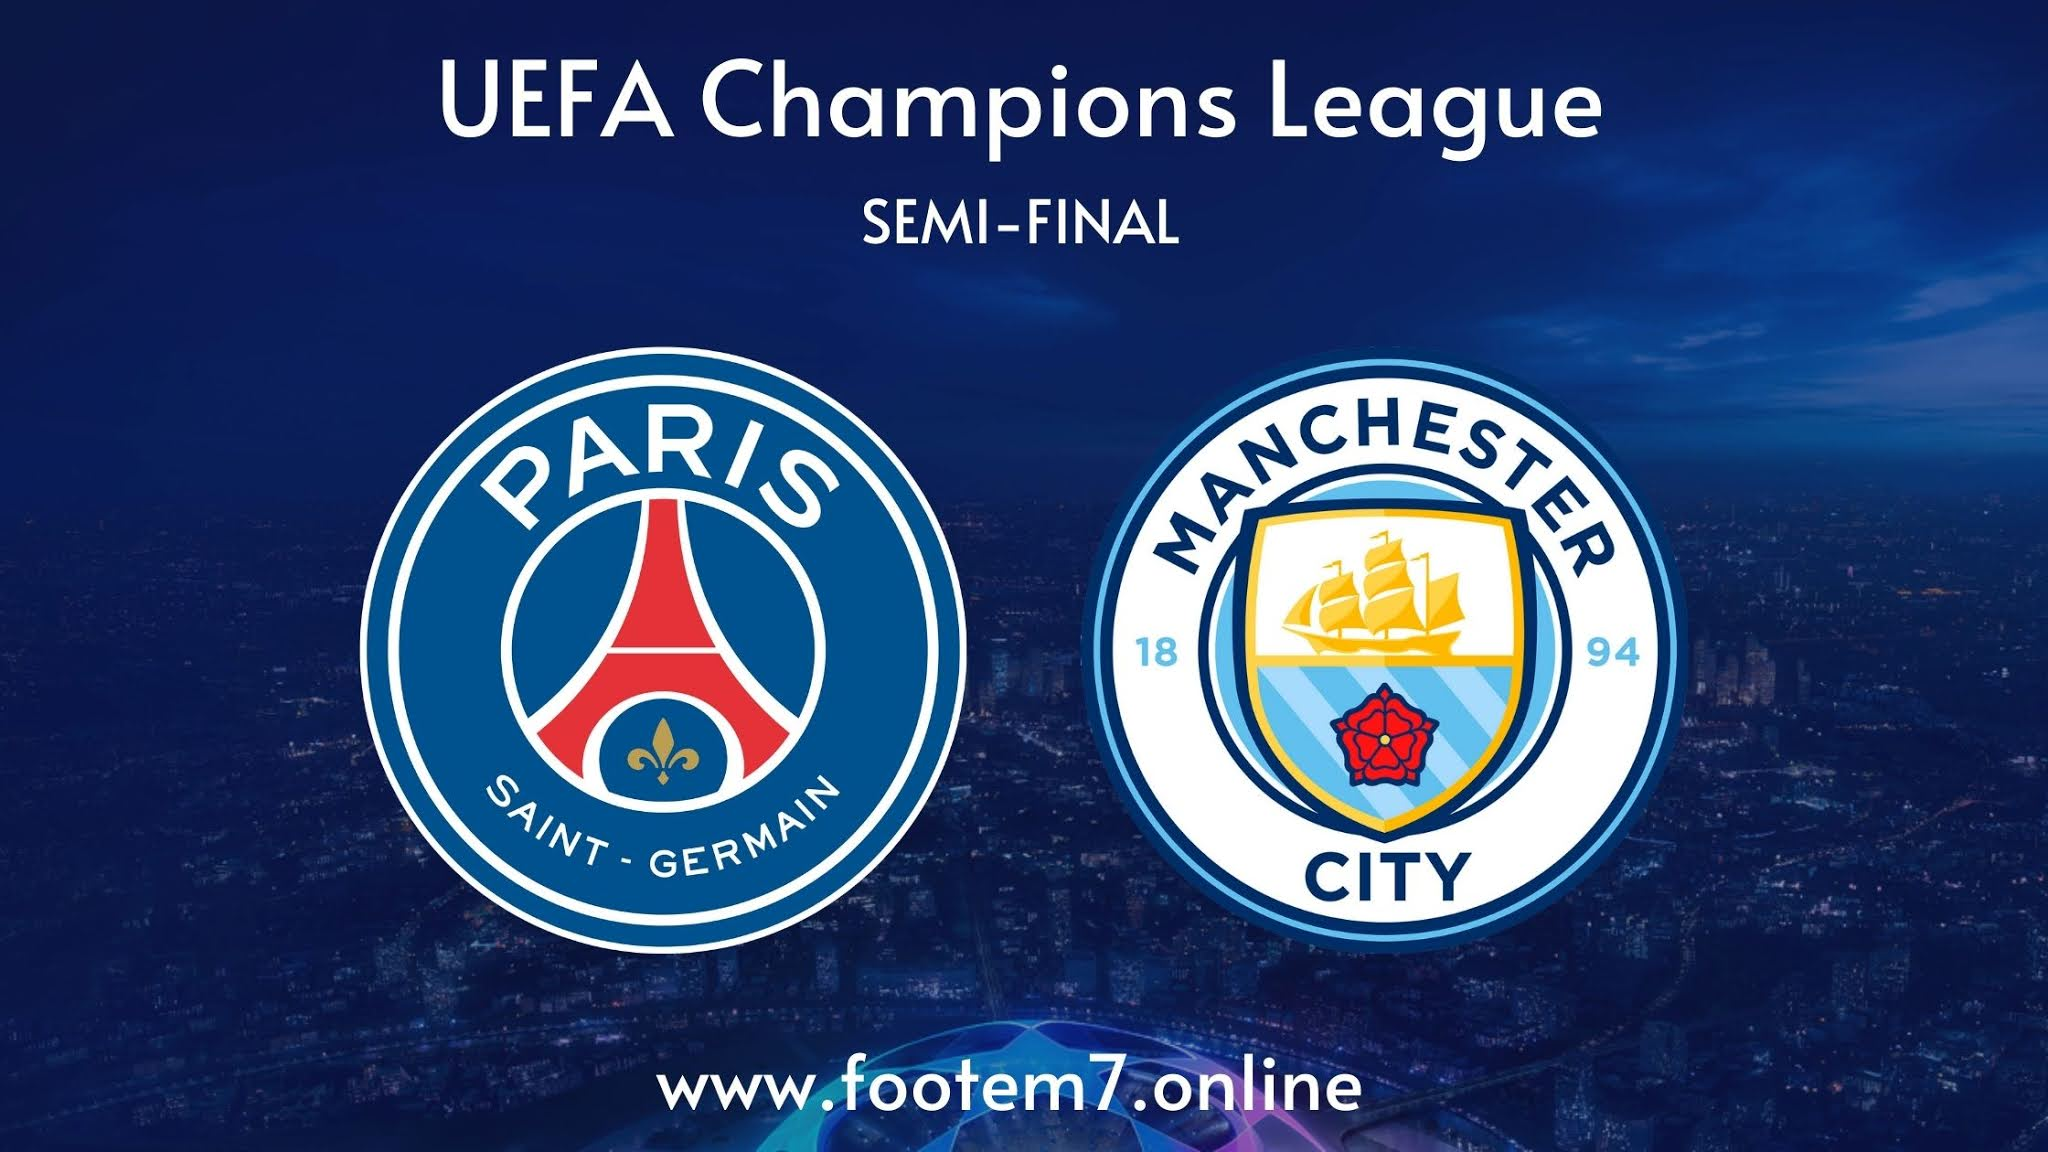 Paris Saint-Germain vs Manchester City semi final champions league